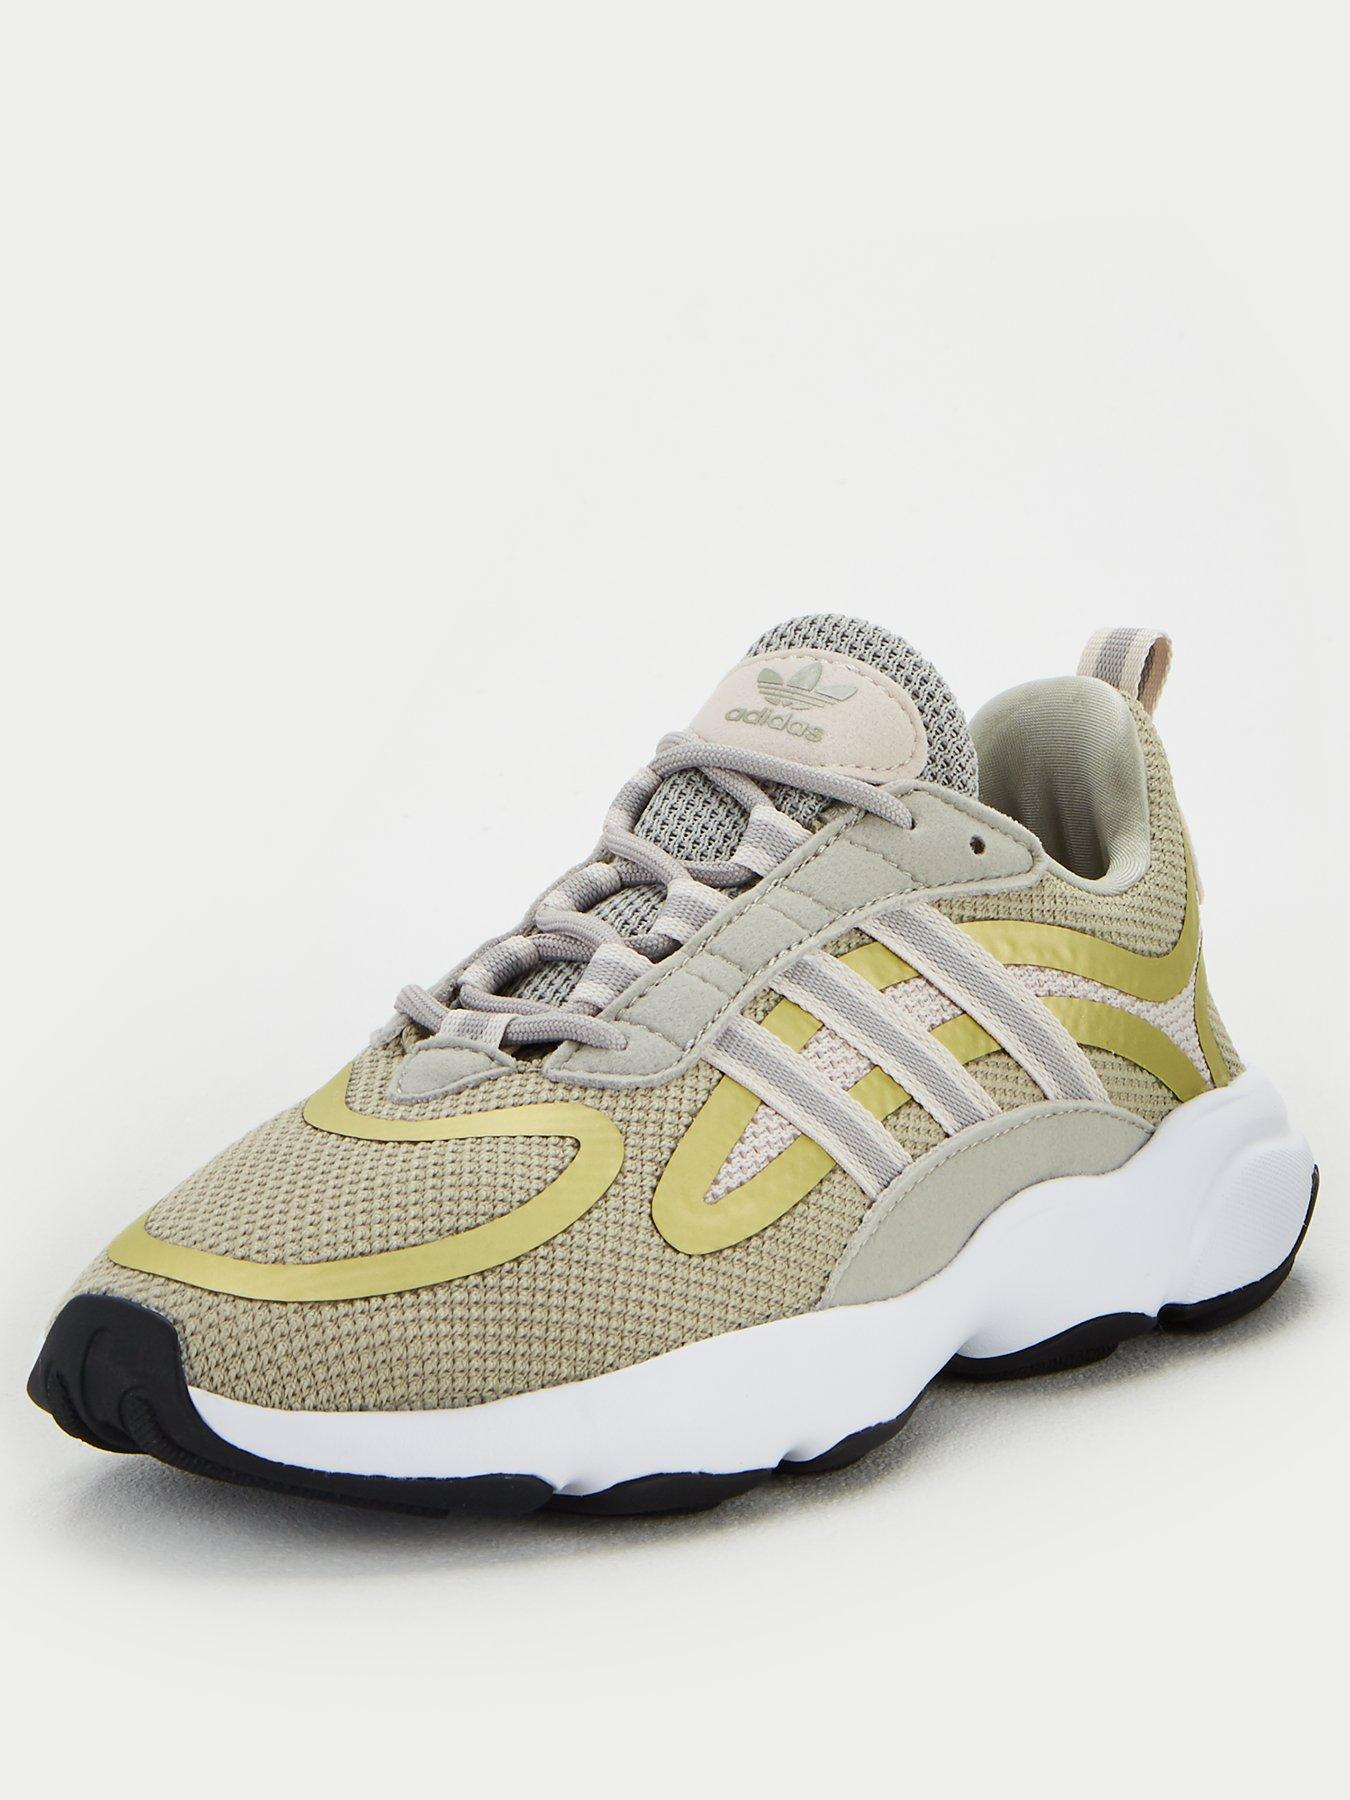 Unisex Men Running Shoes Mesh Lace Up Memory Foam Trainers Athletic Size 3-13 UK